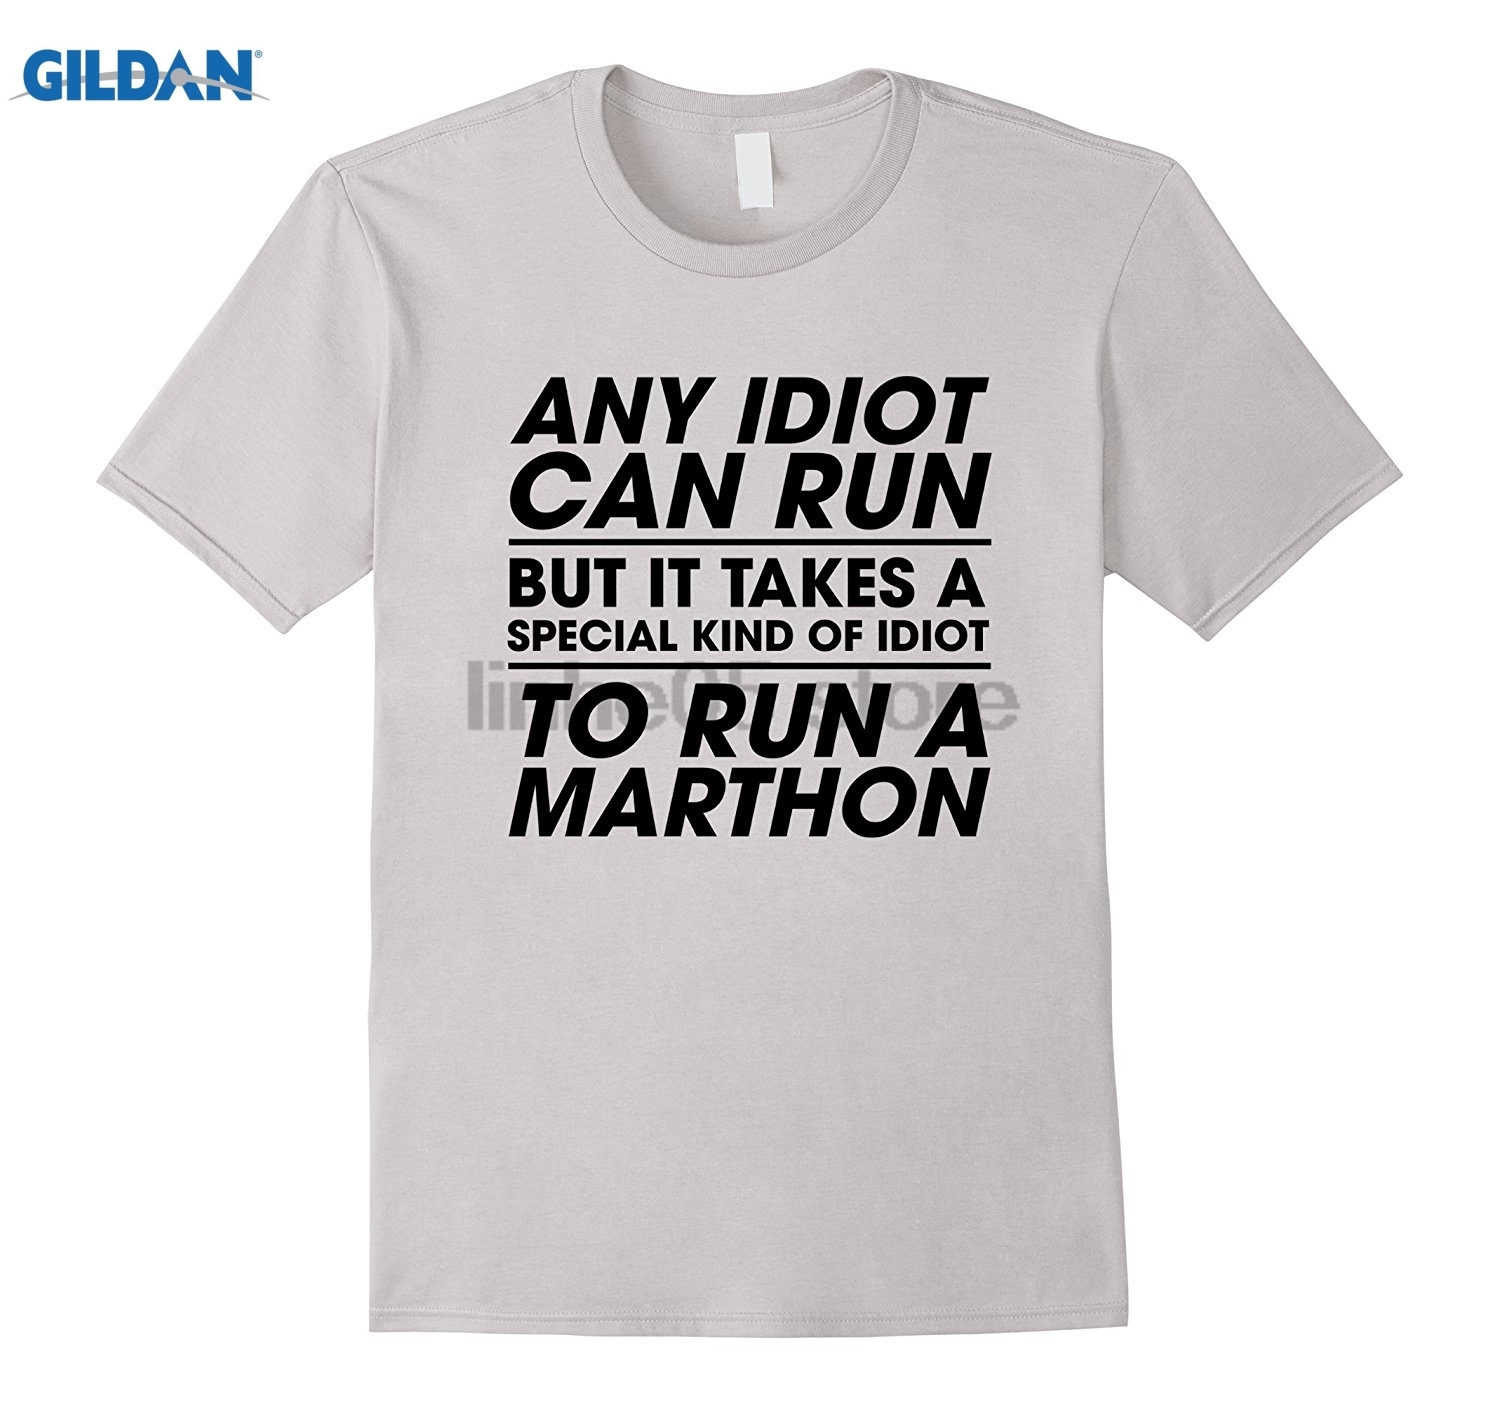 GILDAN Idiot Can Marthon Tshirt Best Runner Gifts Dress female T-shirt